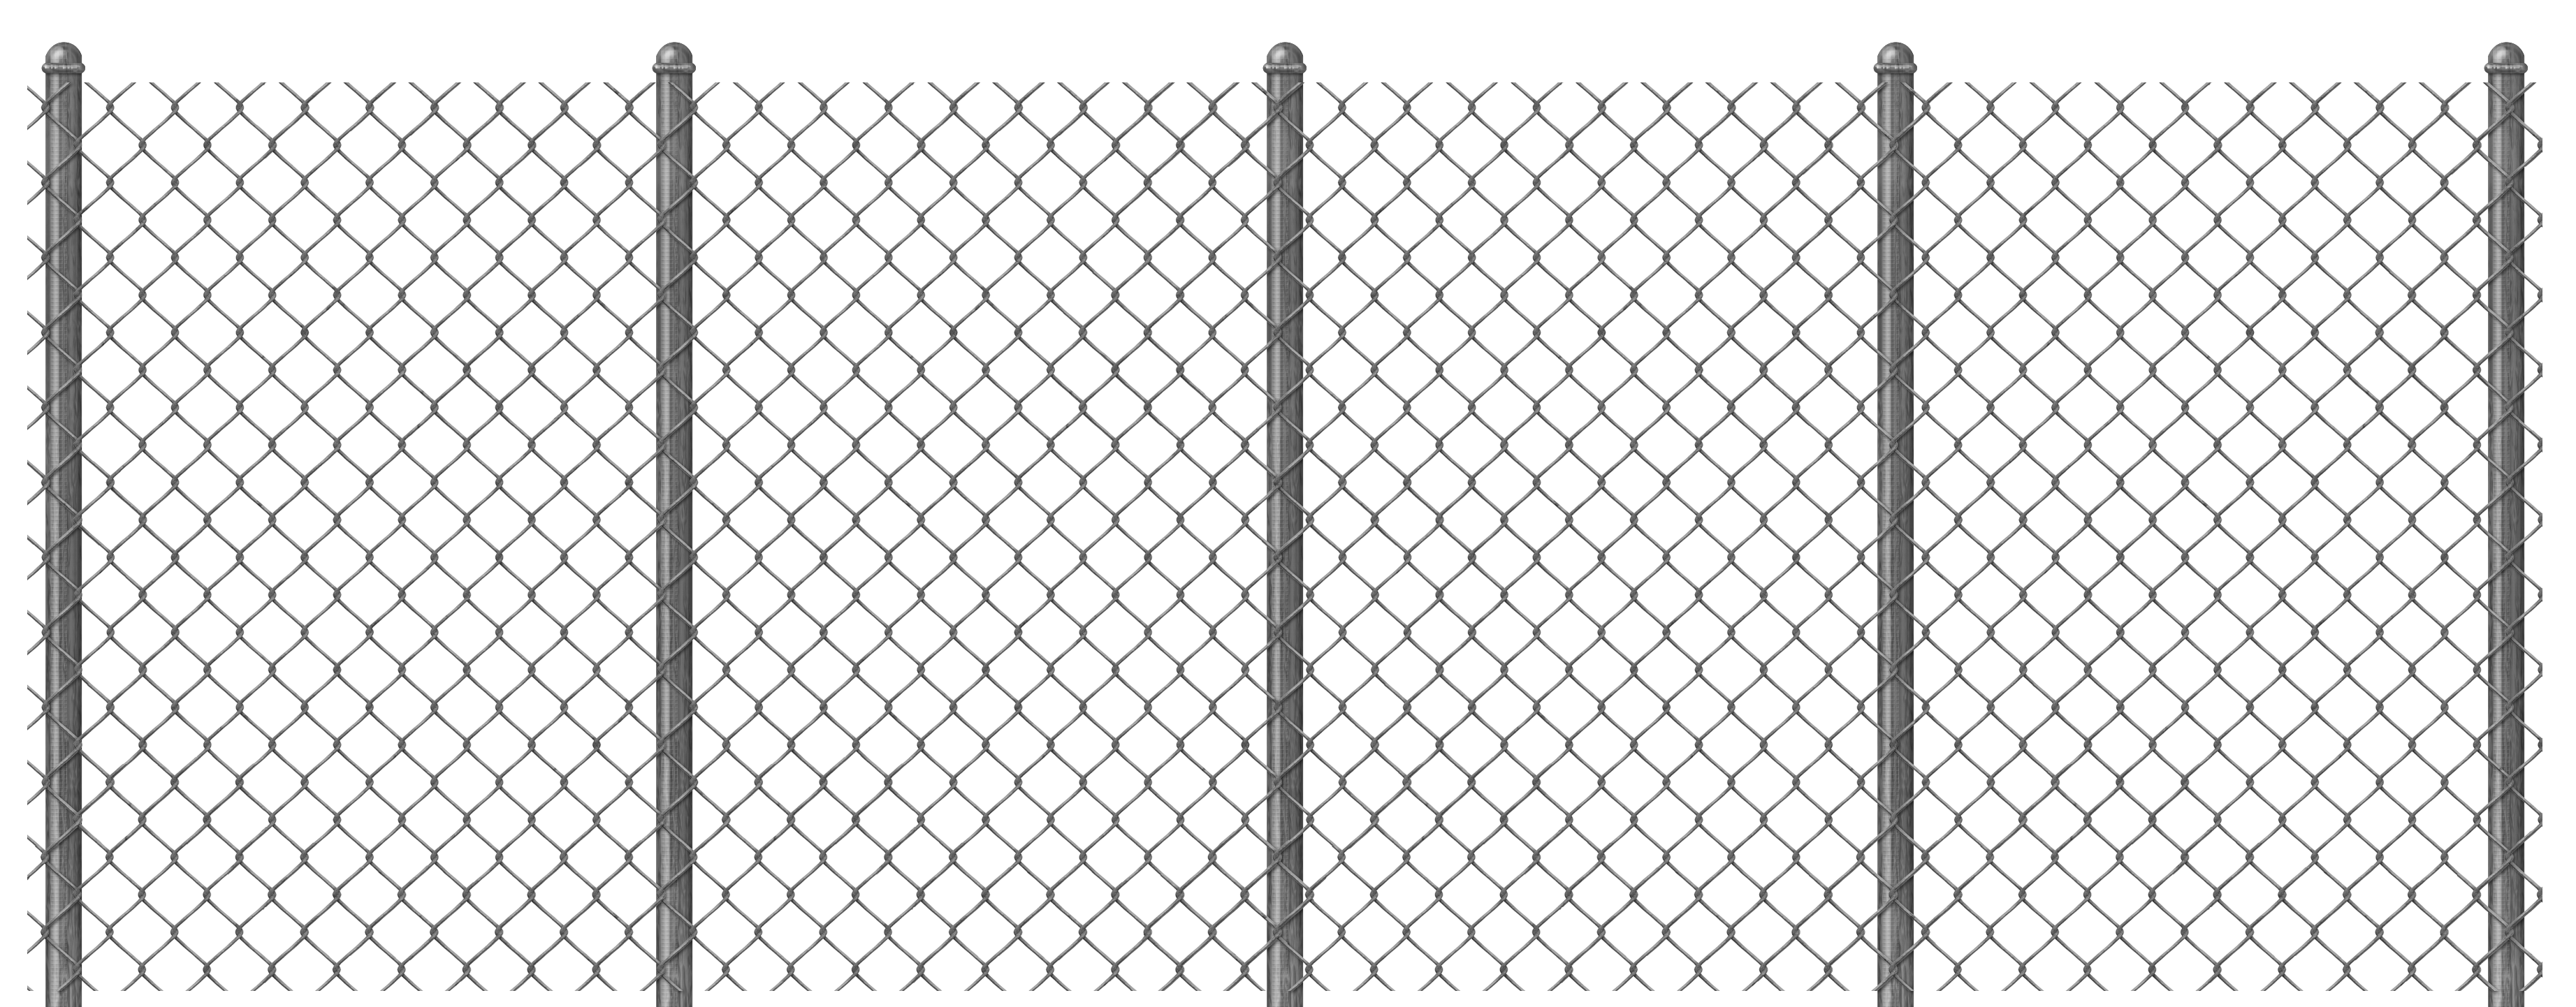 Transparent fence png gallery. Chain clipart chain link